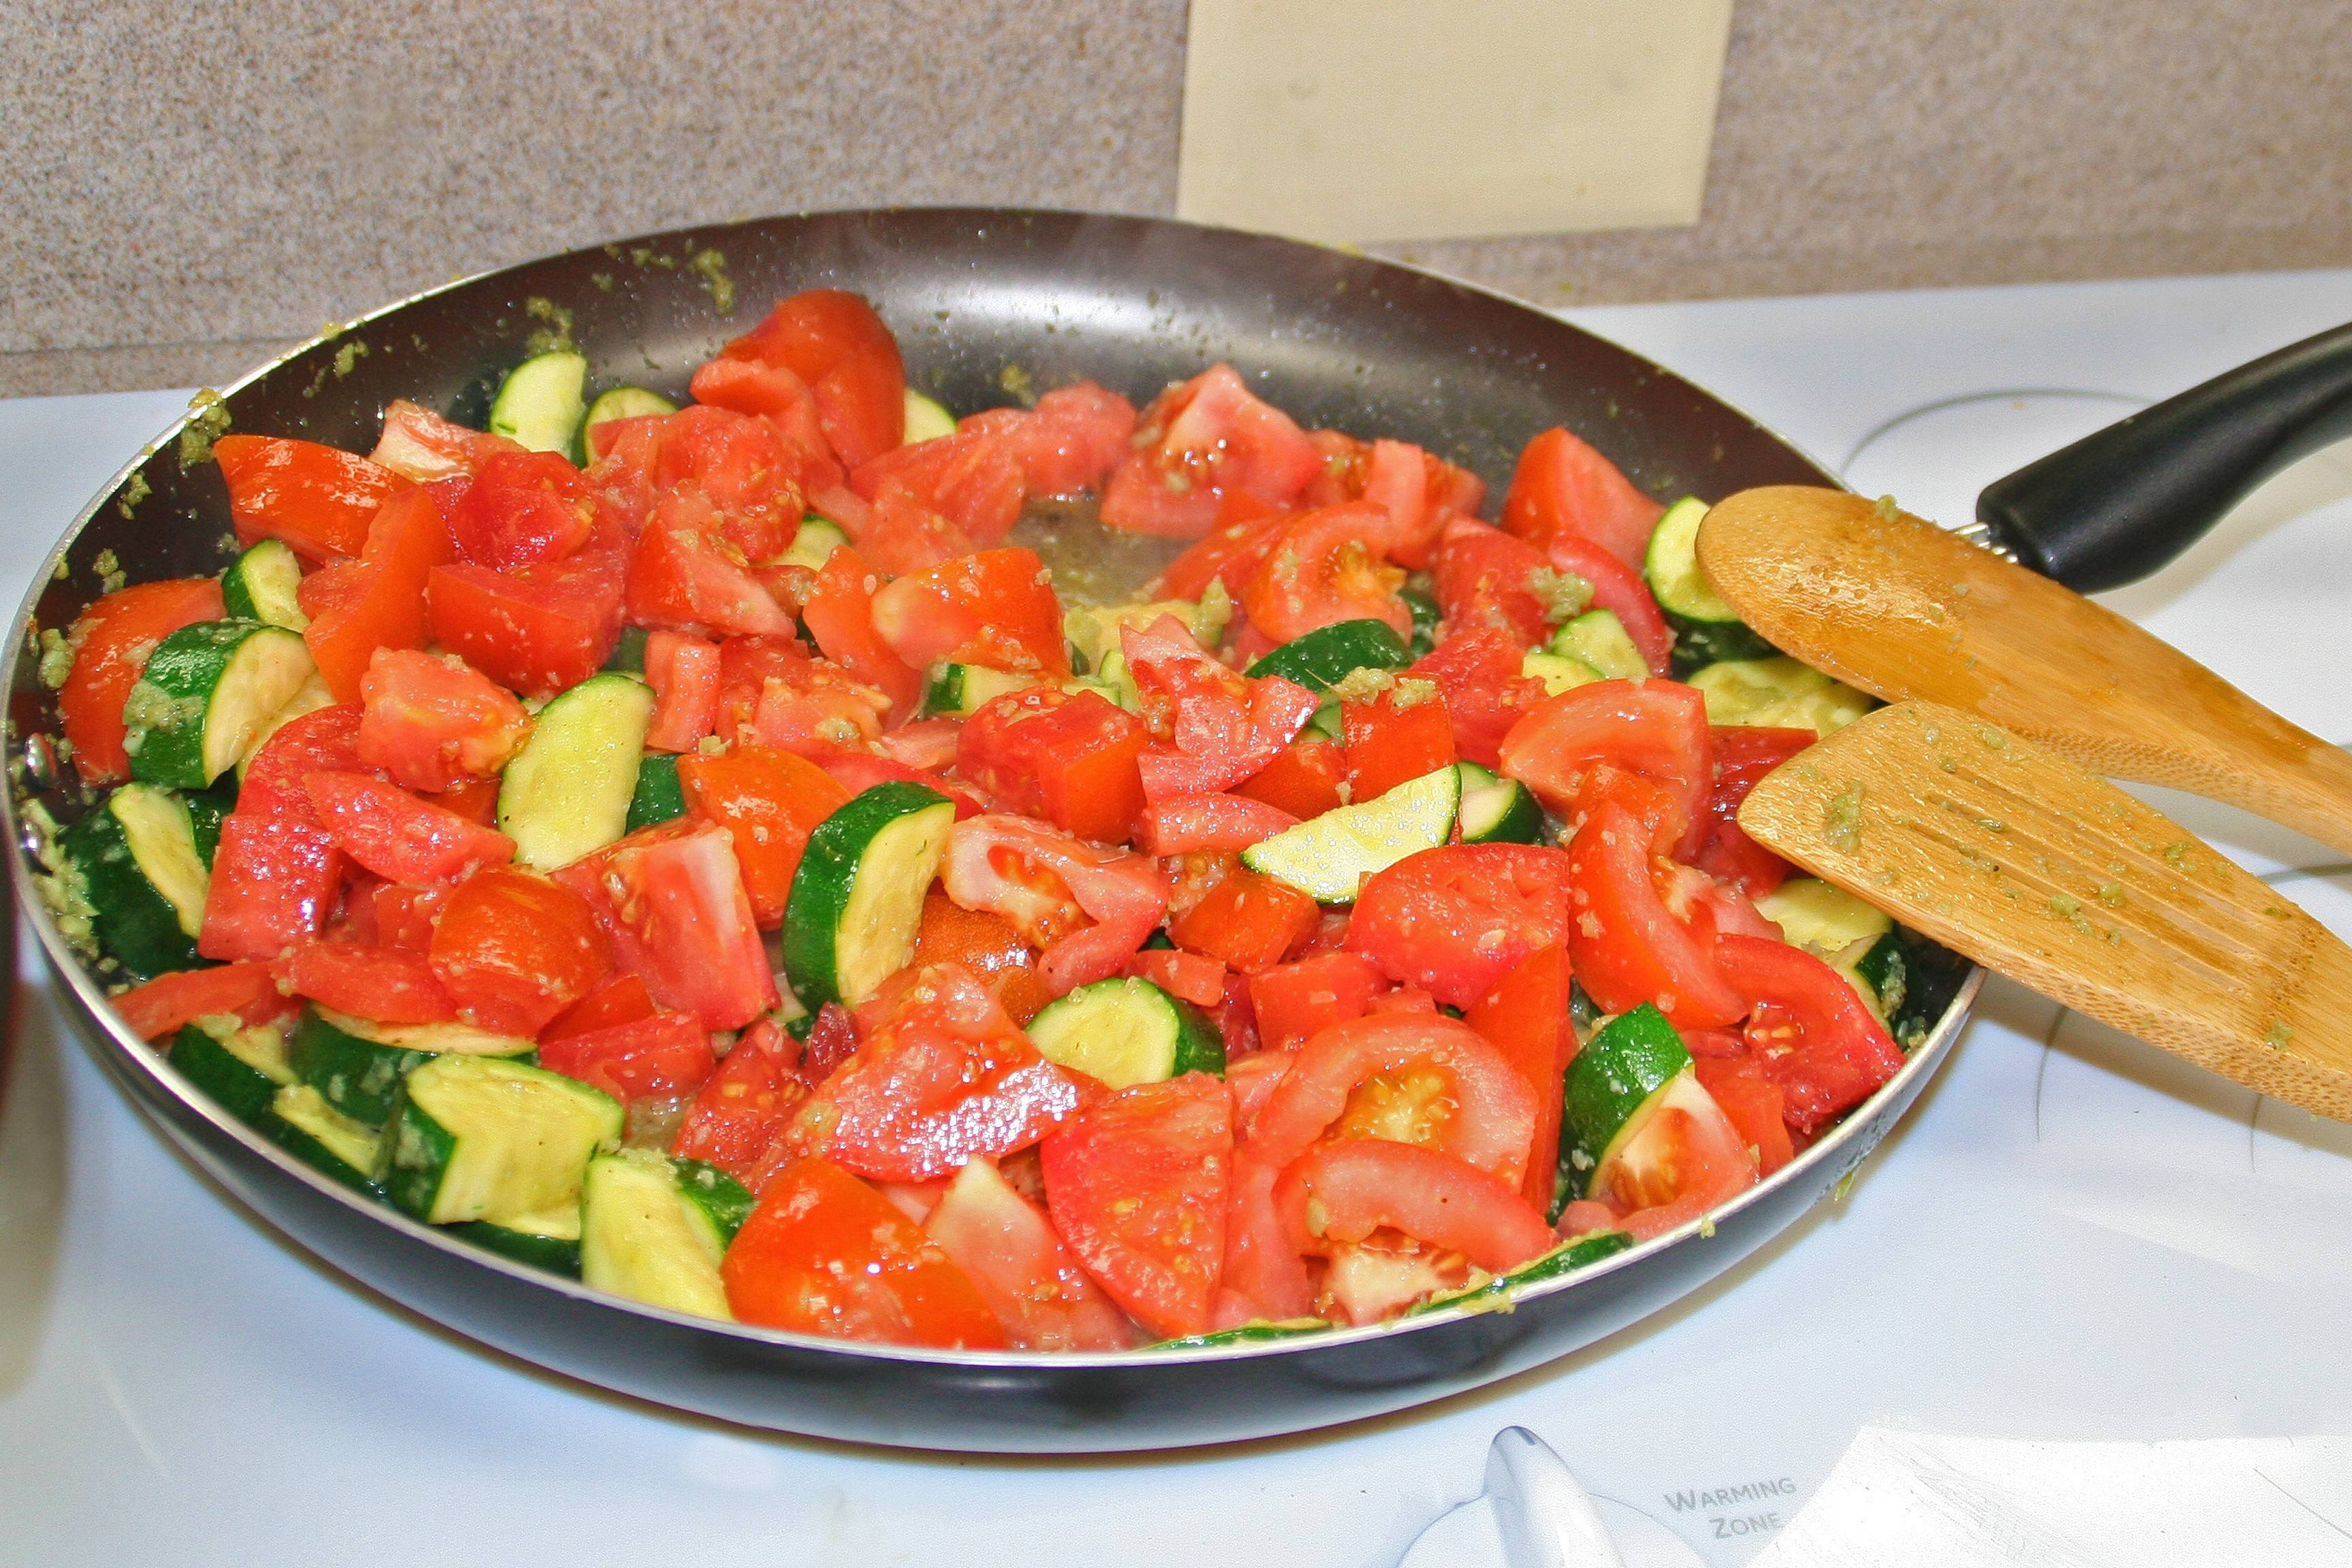 Tomatoes, garlic, and zucchini sauté in olive oil.